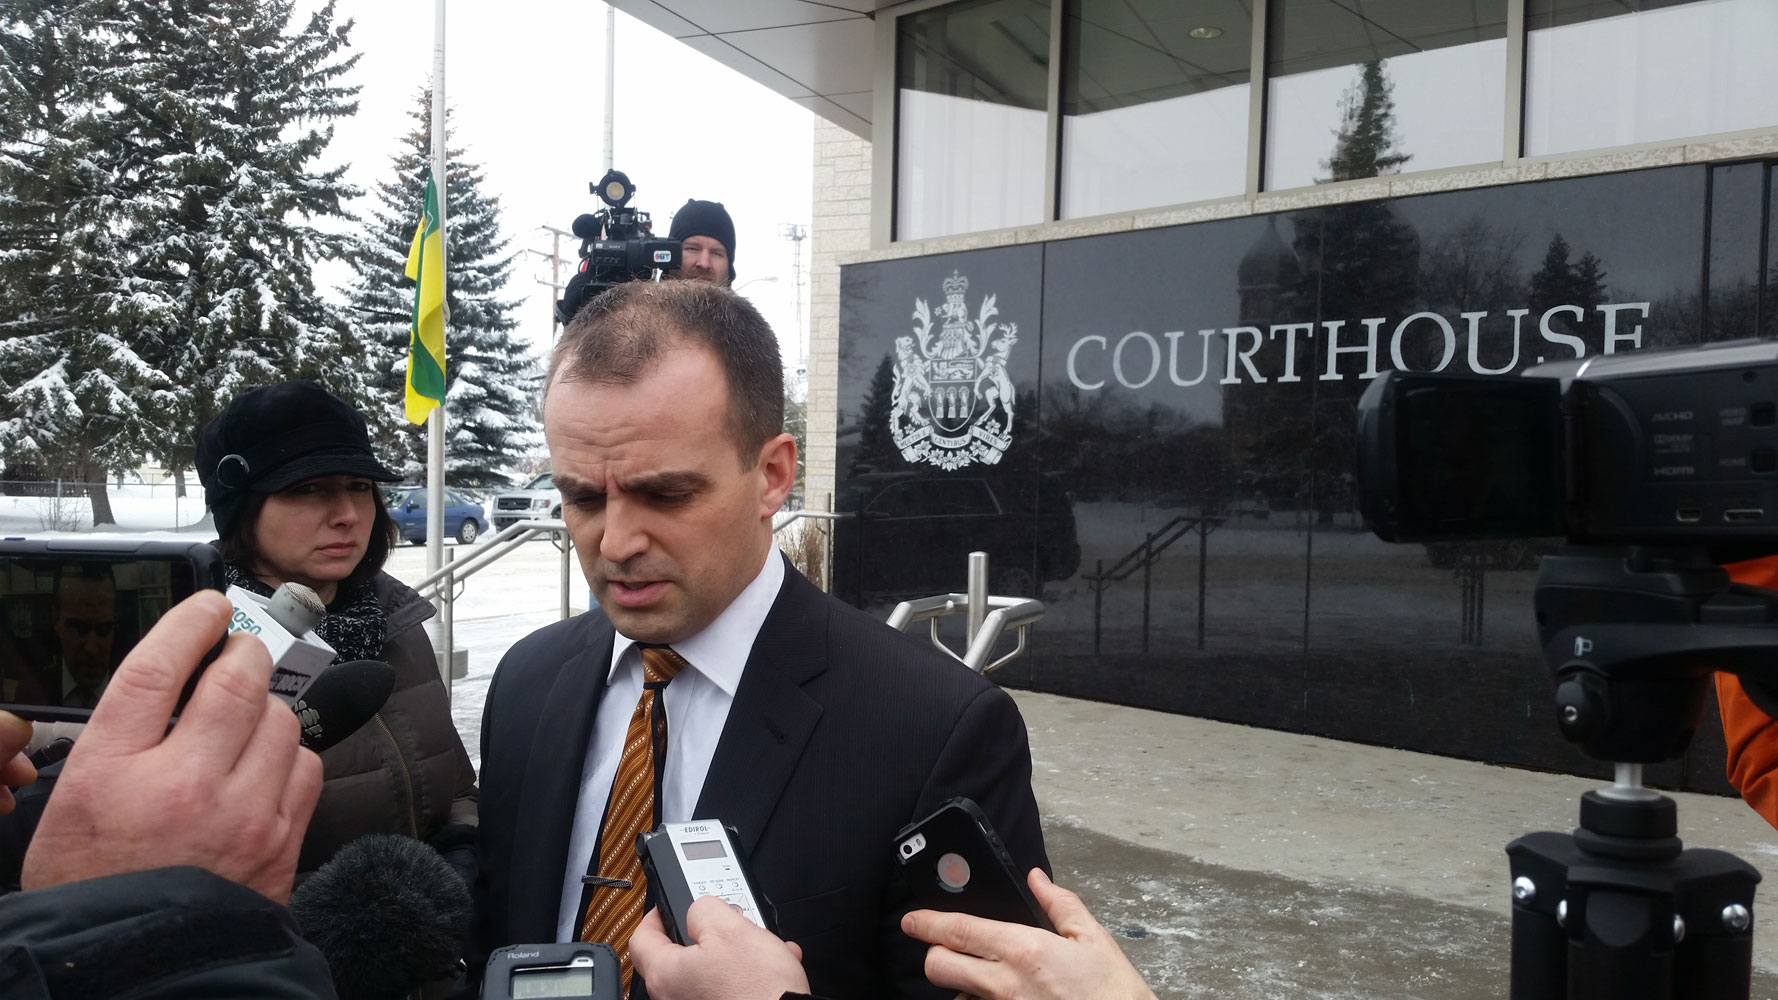 Lawyer Ian Mokuruk speaks to media after the court appearance for the youth charged in the La Loche shooting.